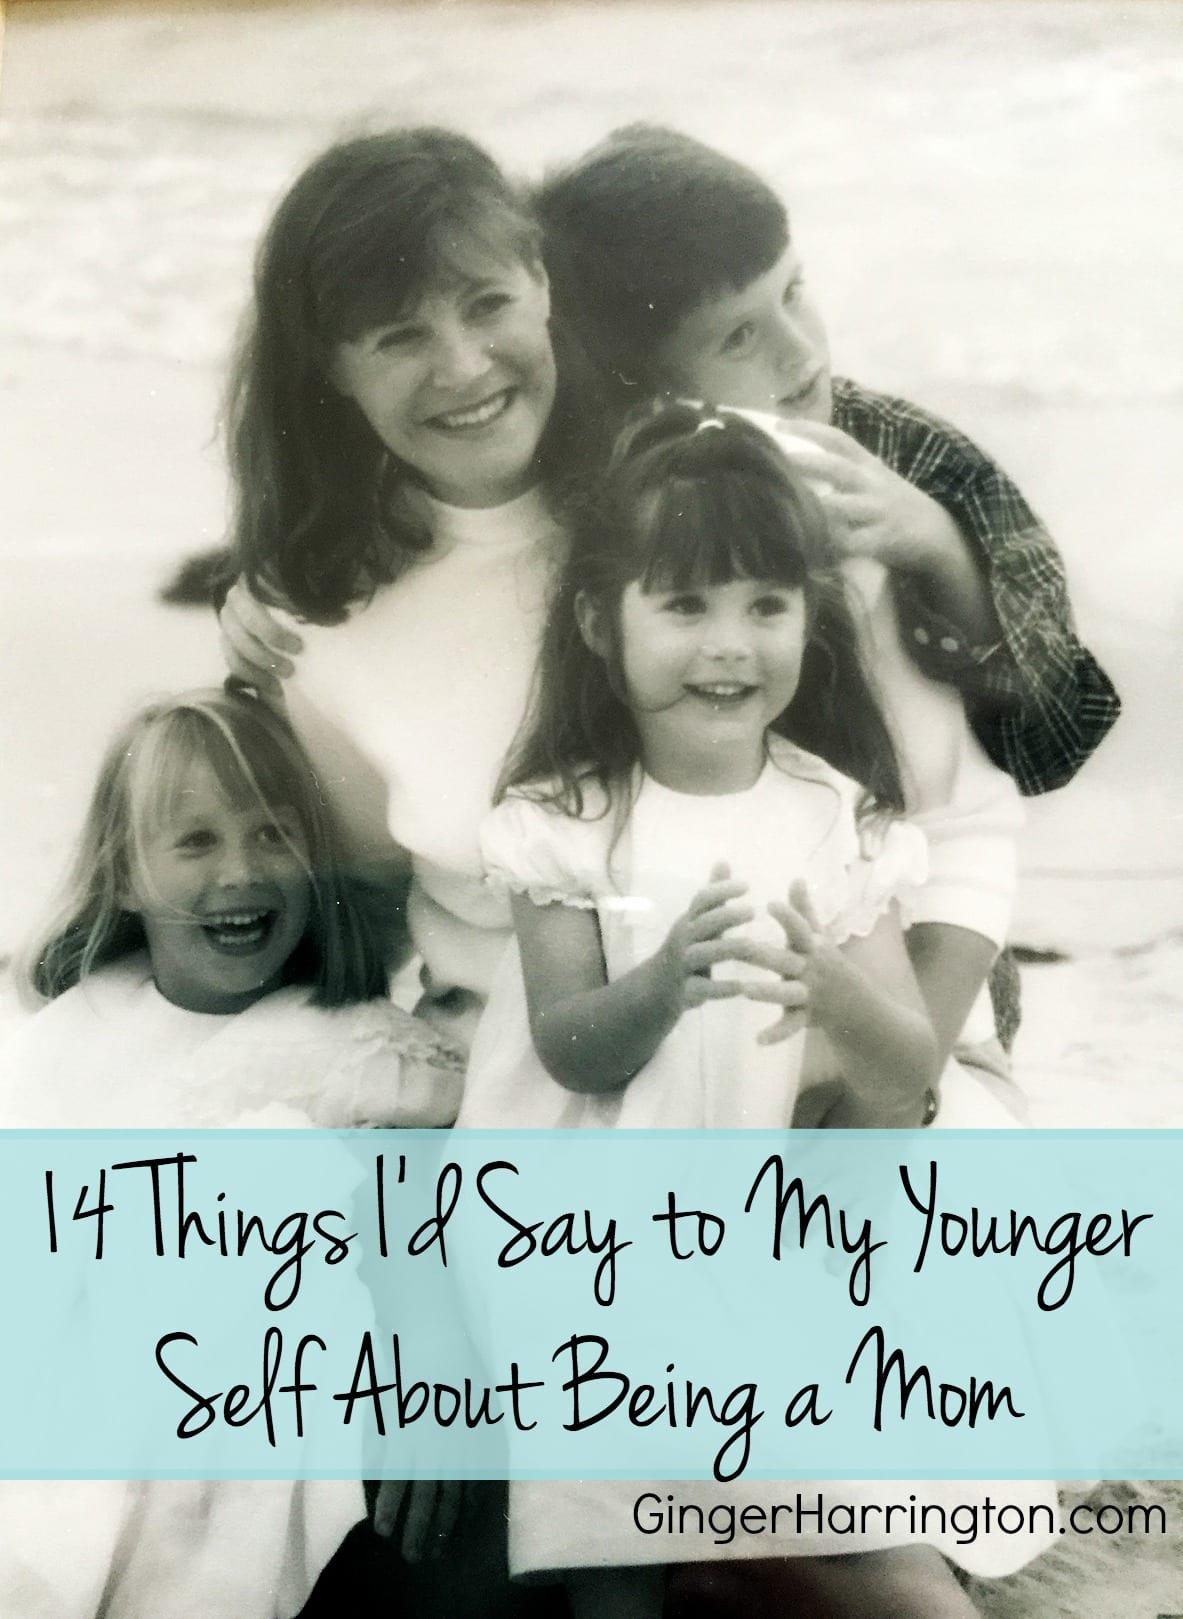 14 Things I'd Say to My Younger Self About Being a Mom